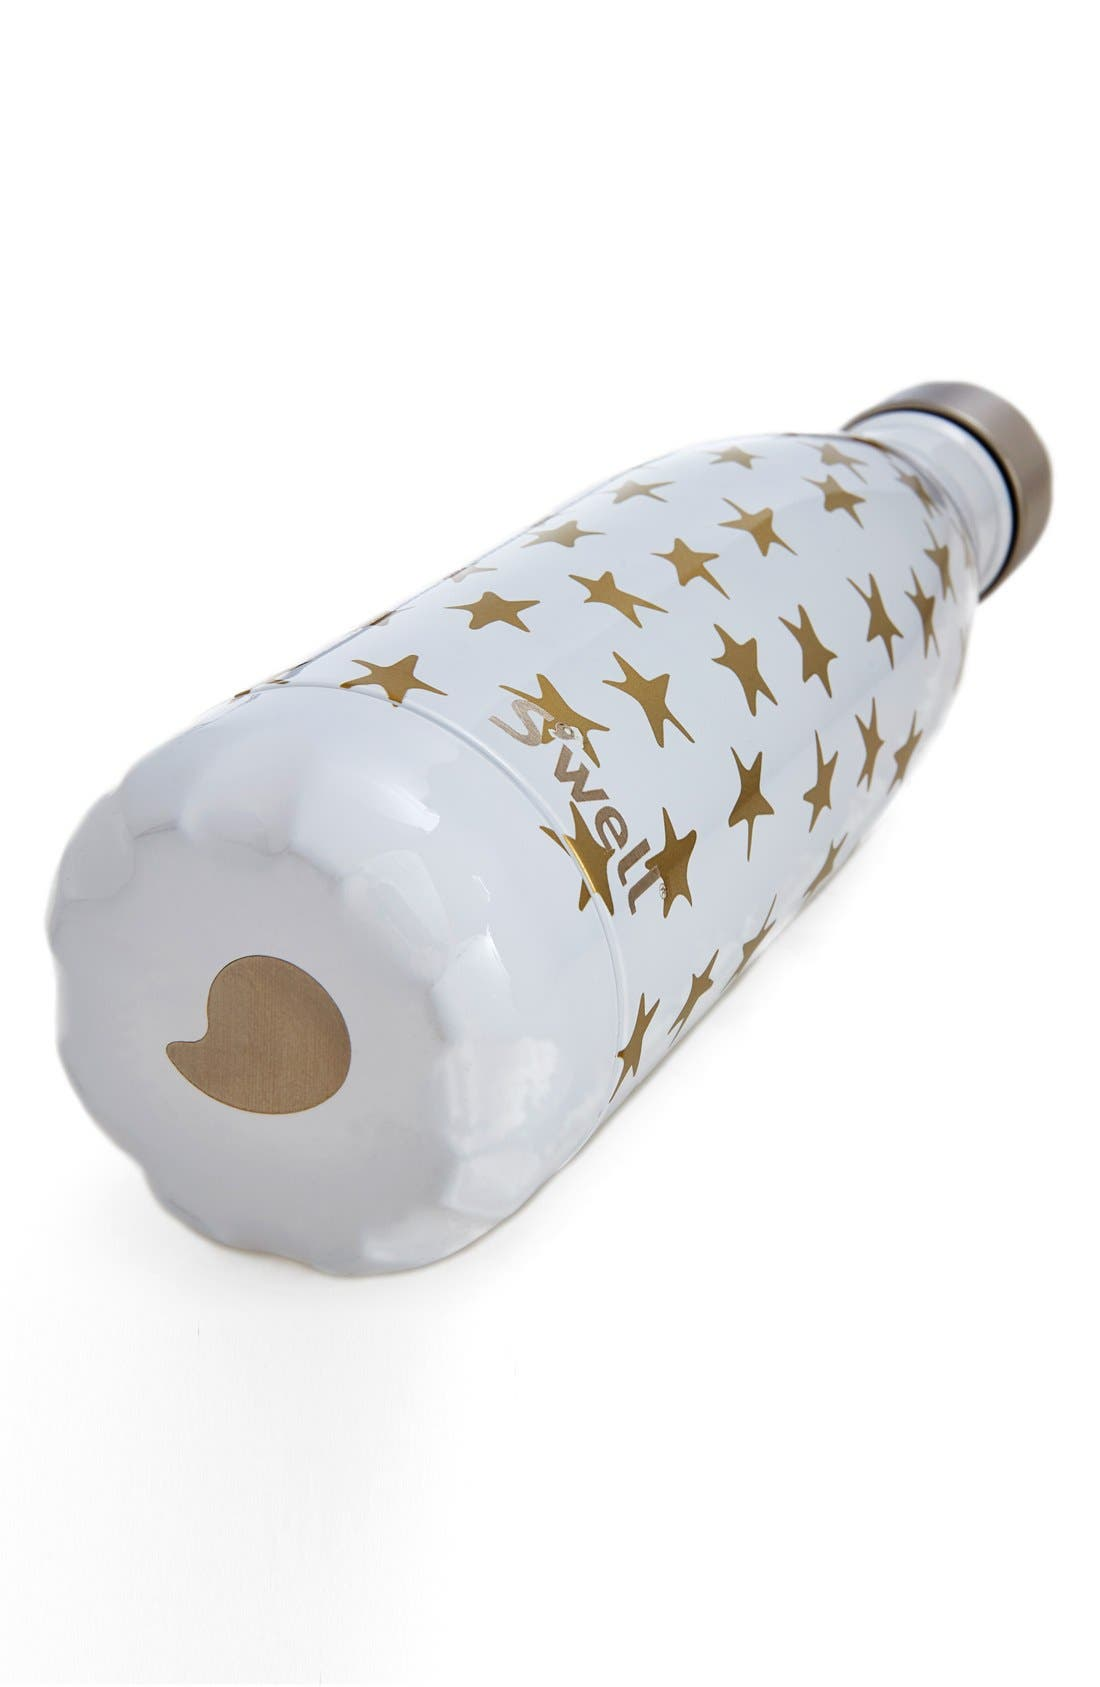 'Galaxy Collection - Star Crossed' Stainless Steel Water Bottle,                             Alternate thumbnail 4, color,                             100